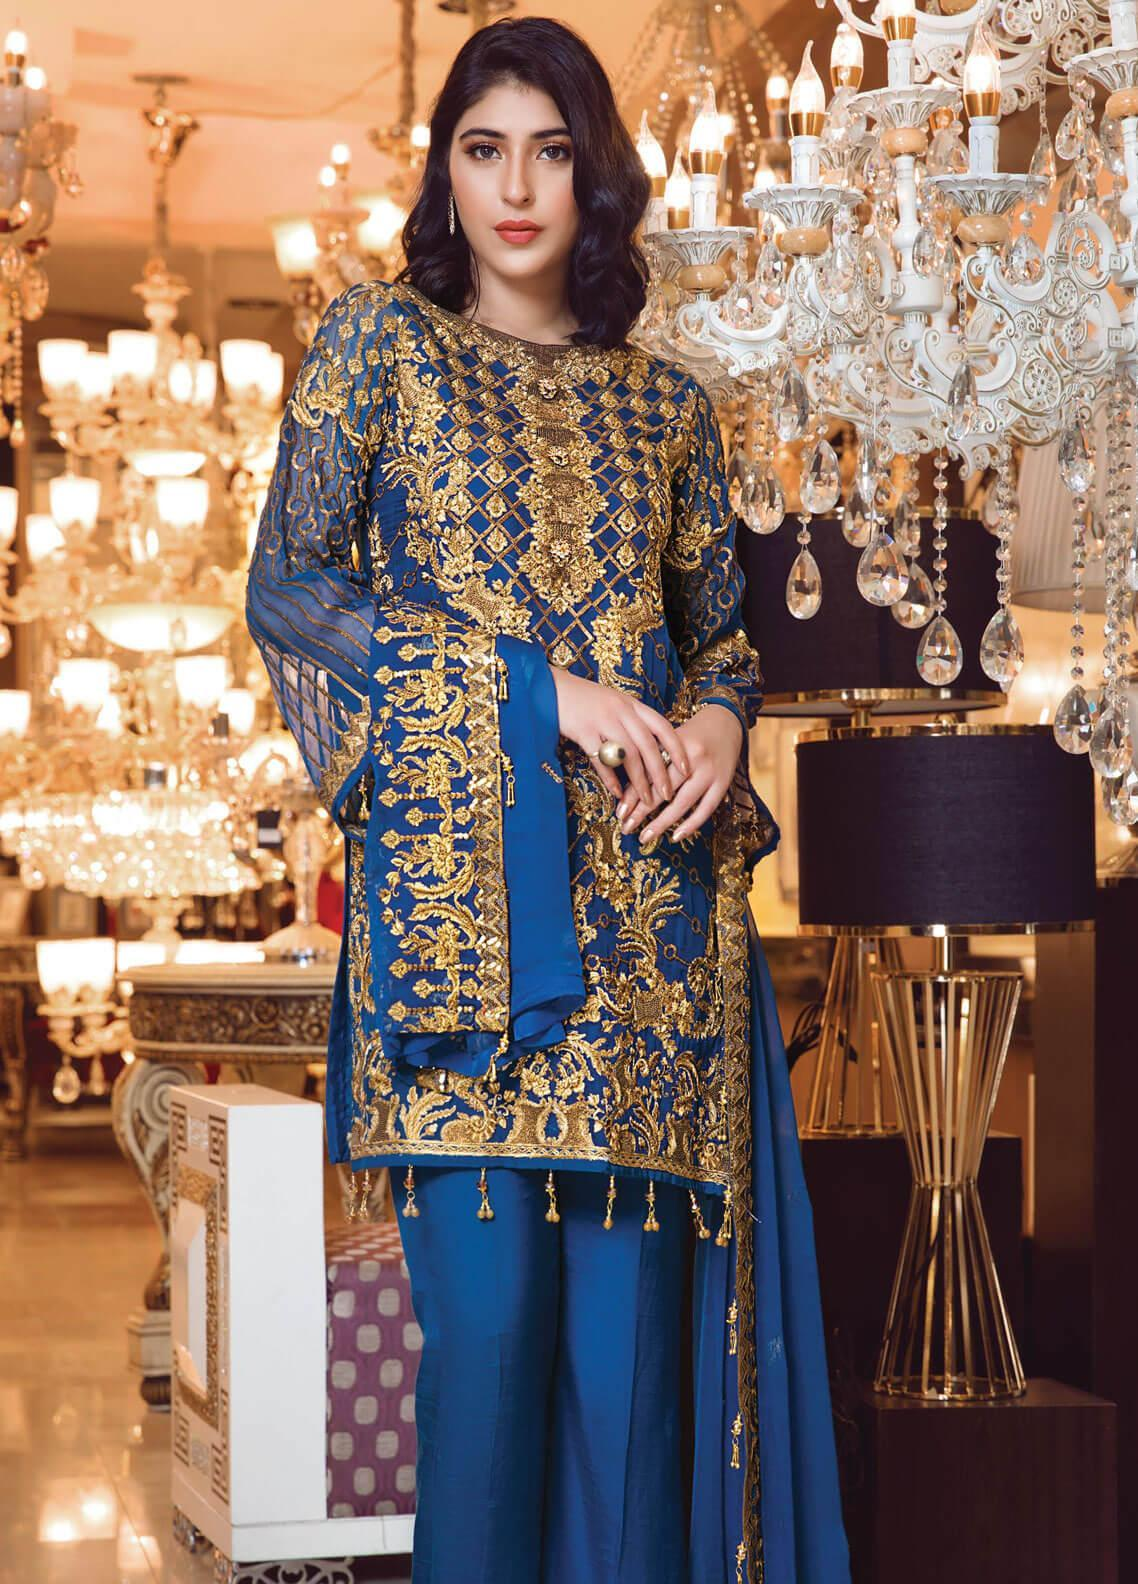 Elaf Embroidered Chiffon Unstitched 3 Piece Suit EL19-C3 304 BERKSHINE BLUE - Premium Collection